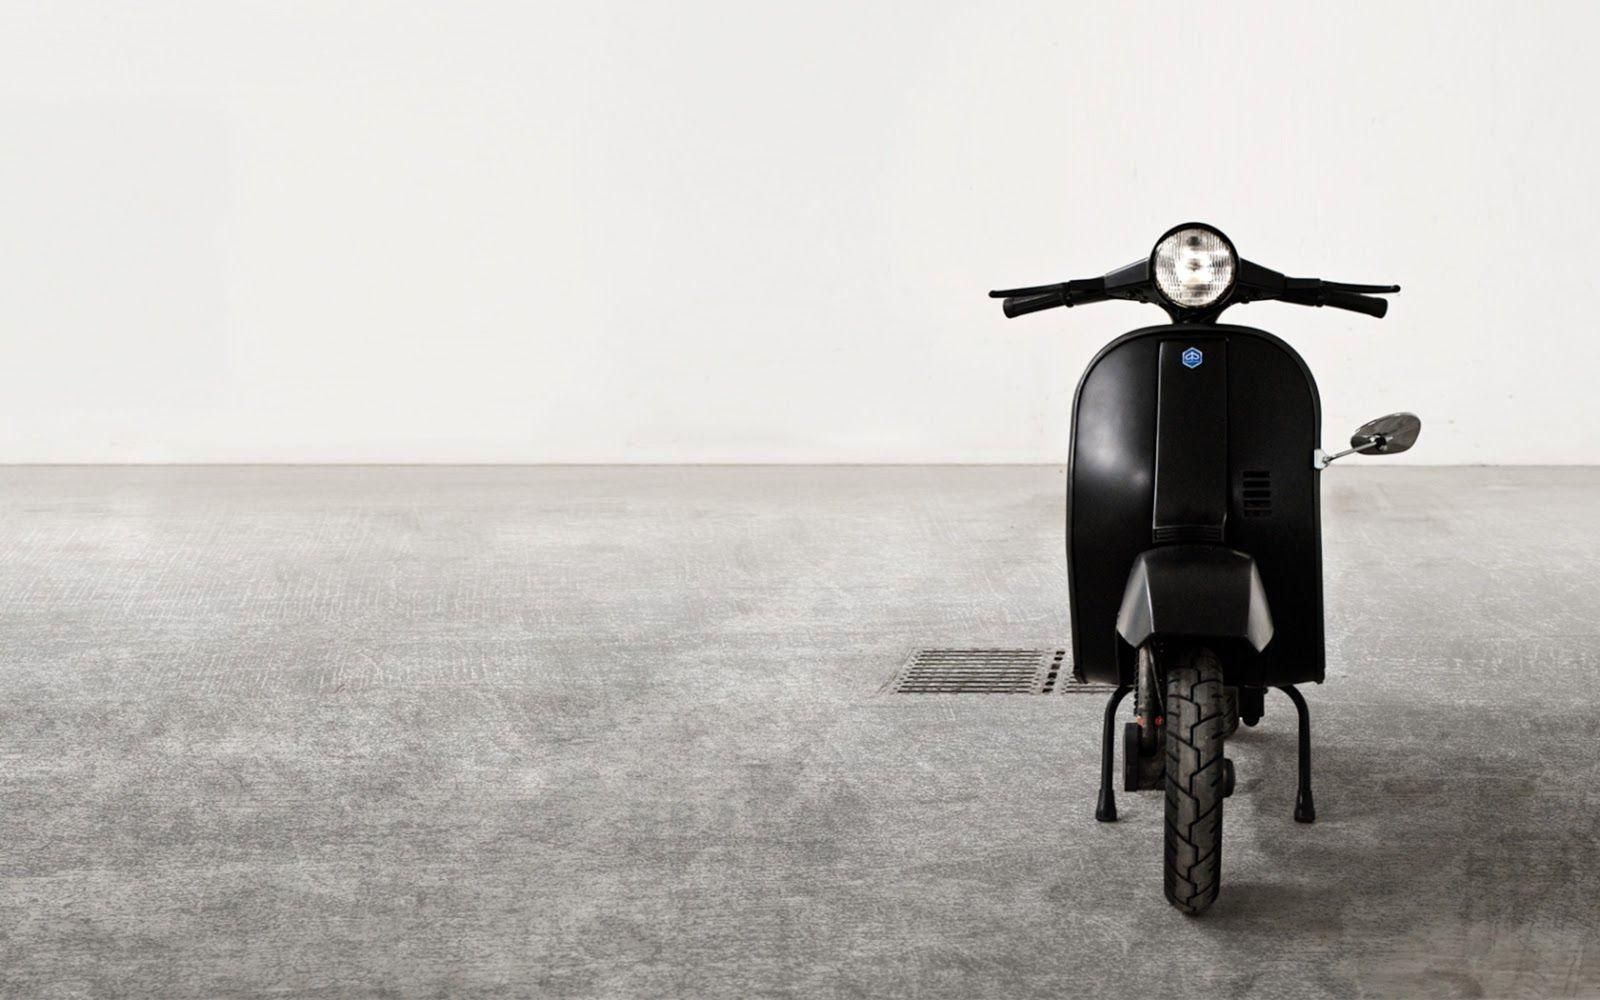 Vespa Bike Full Hd Wallpapers Free Download 36 With Images